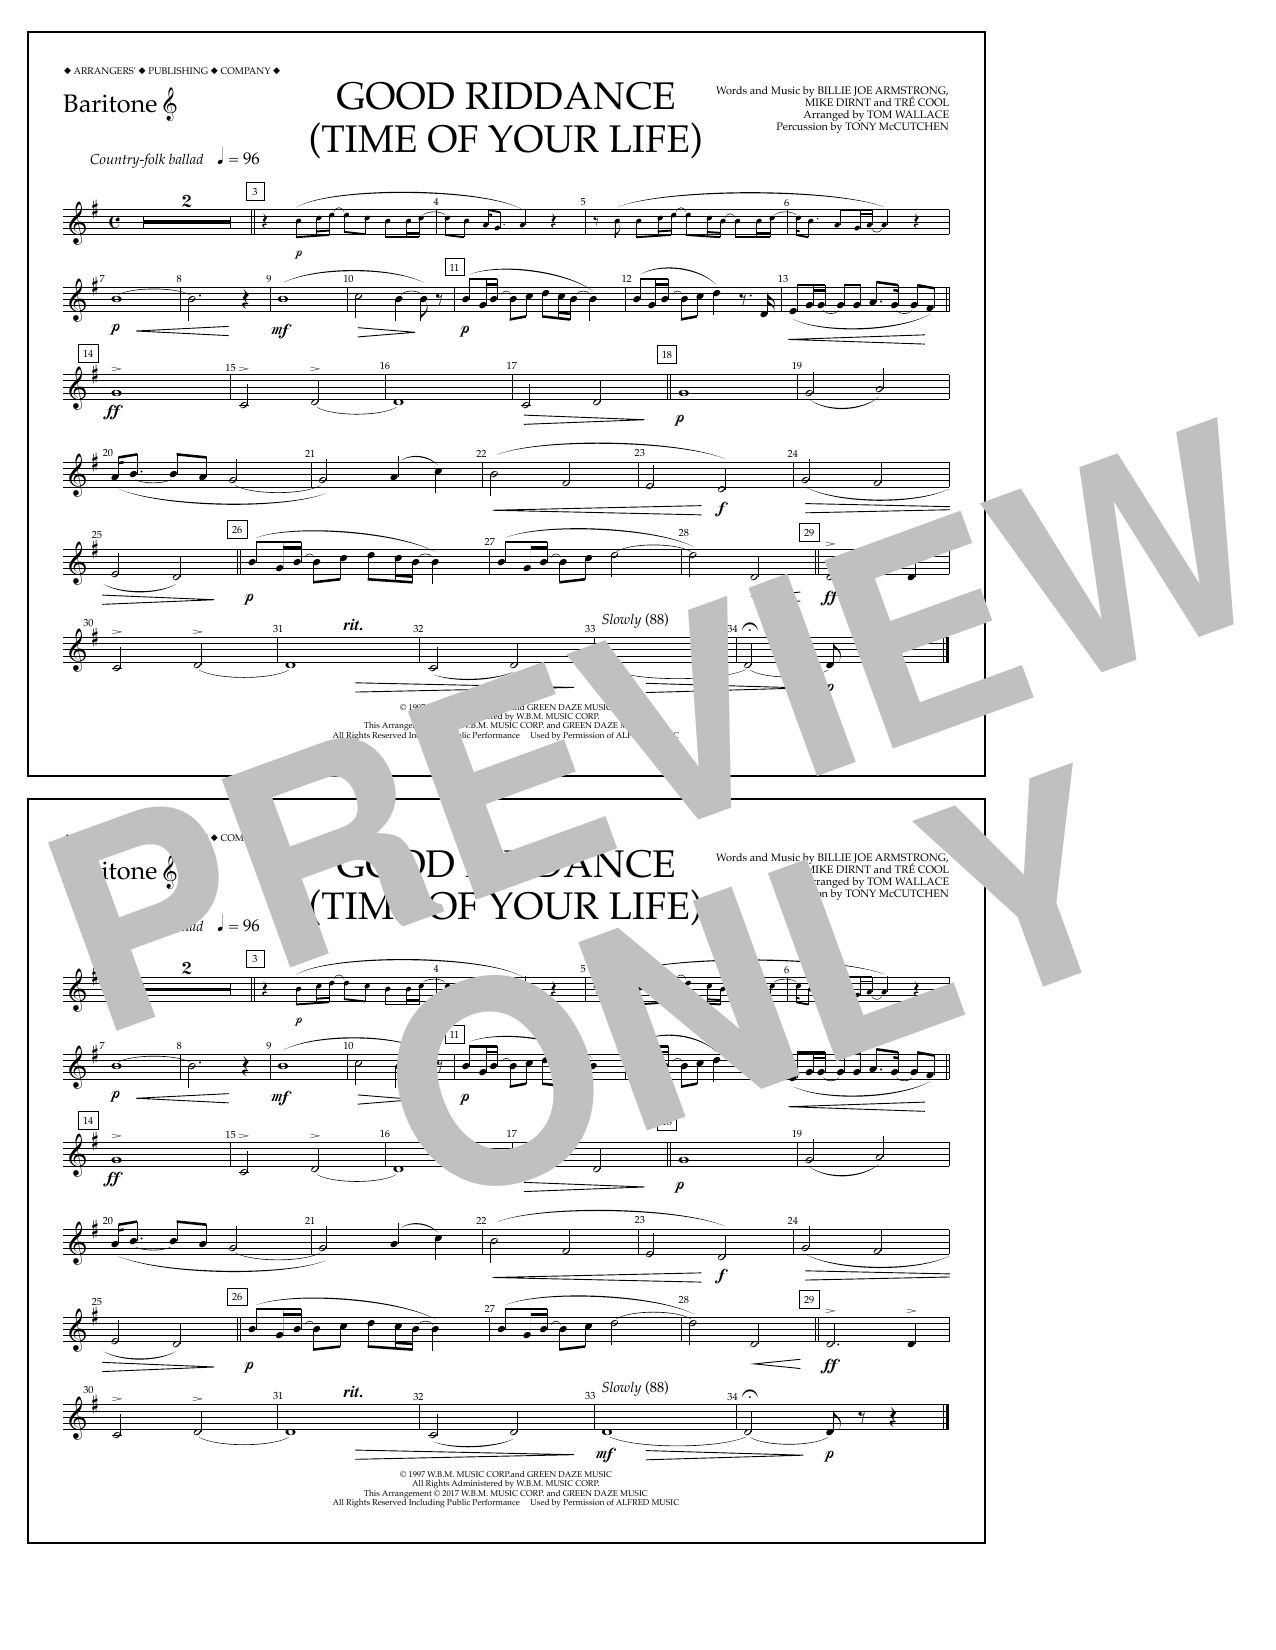 Good Riddance (Time of Your Life) - Baritone T.C. Partition Digitale